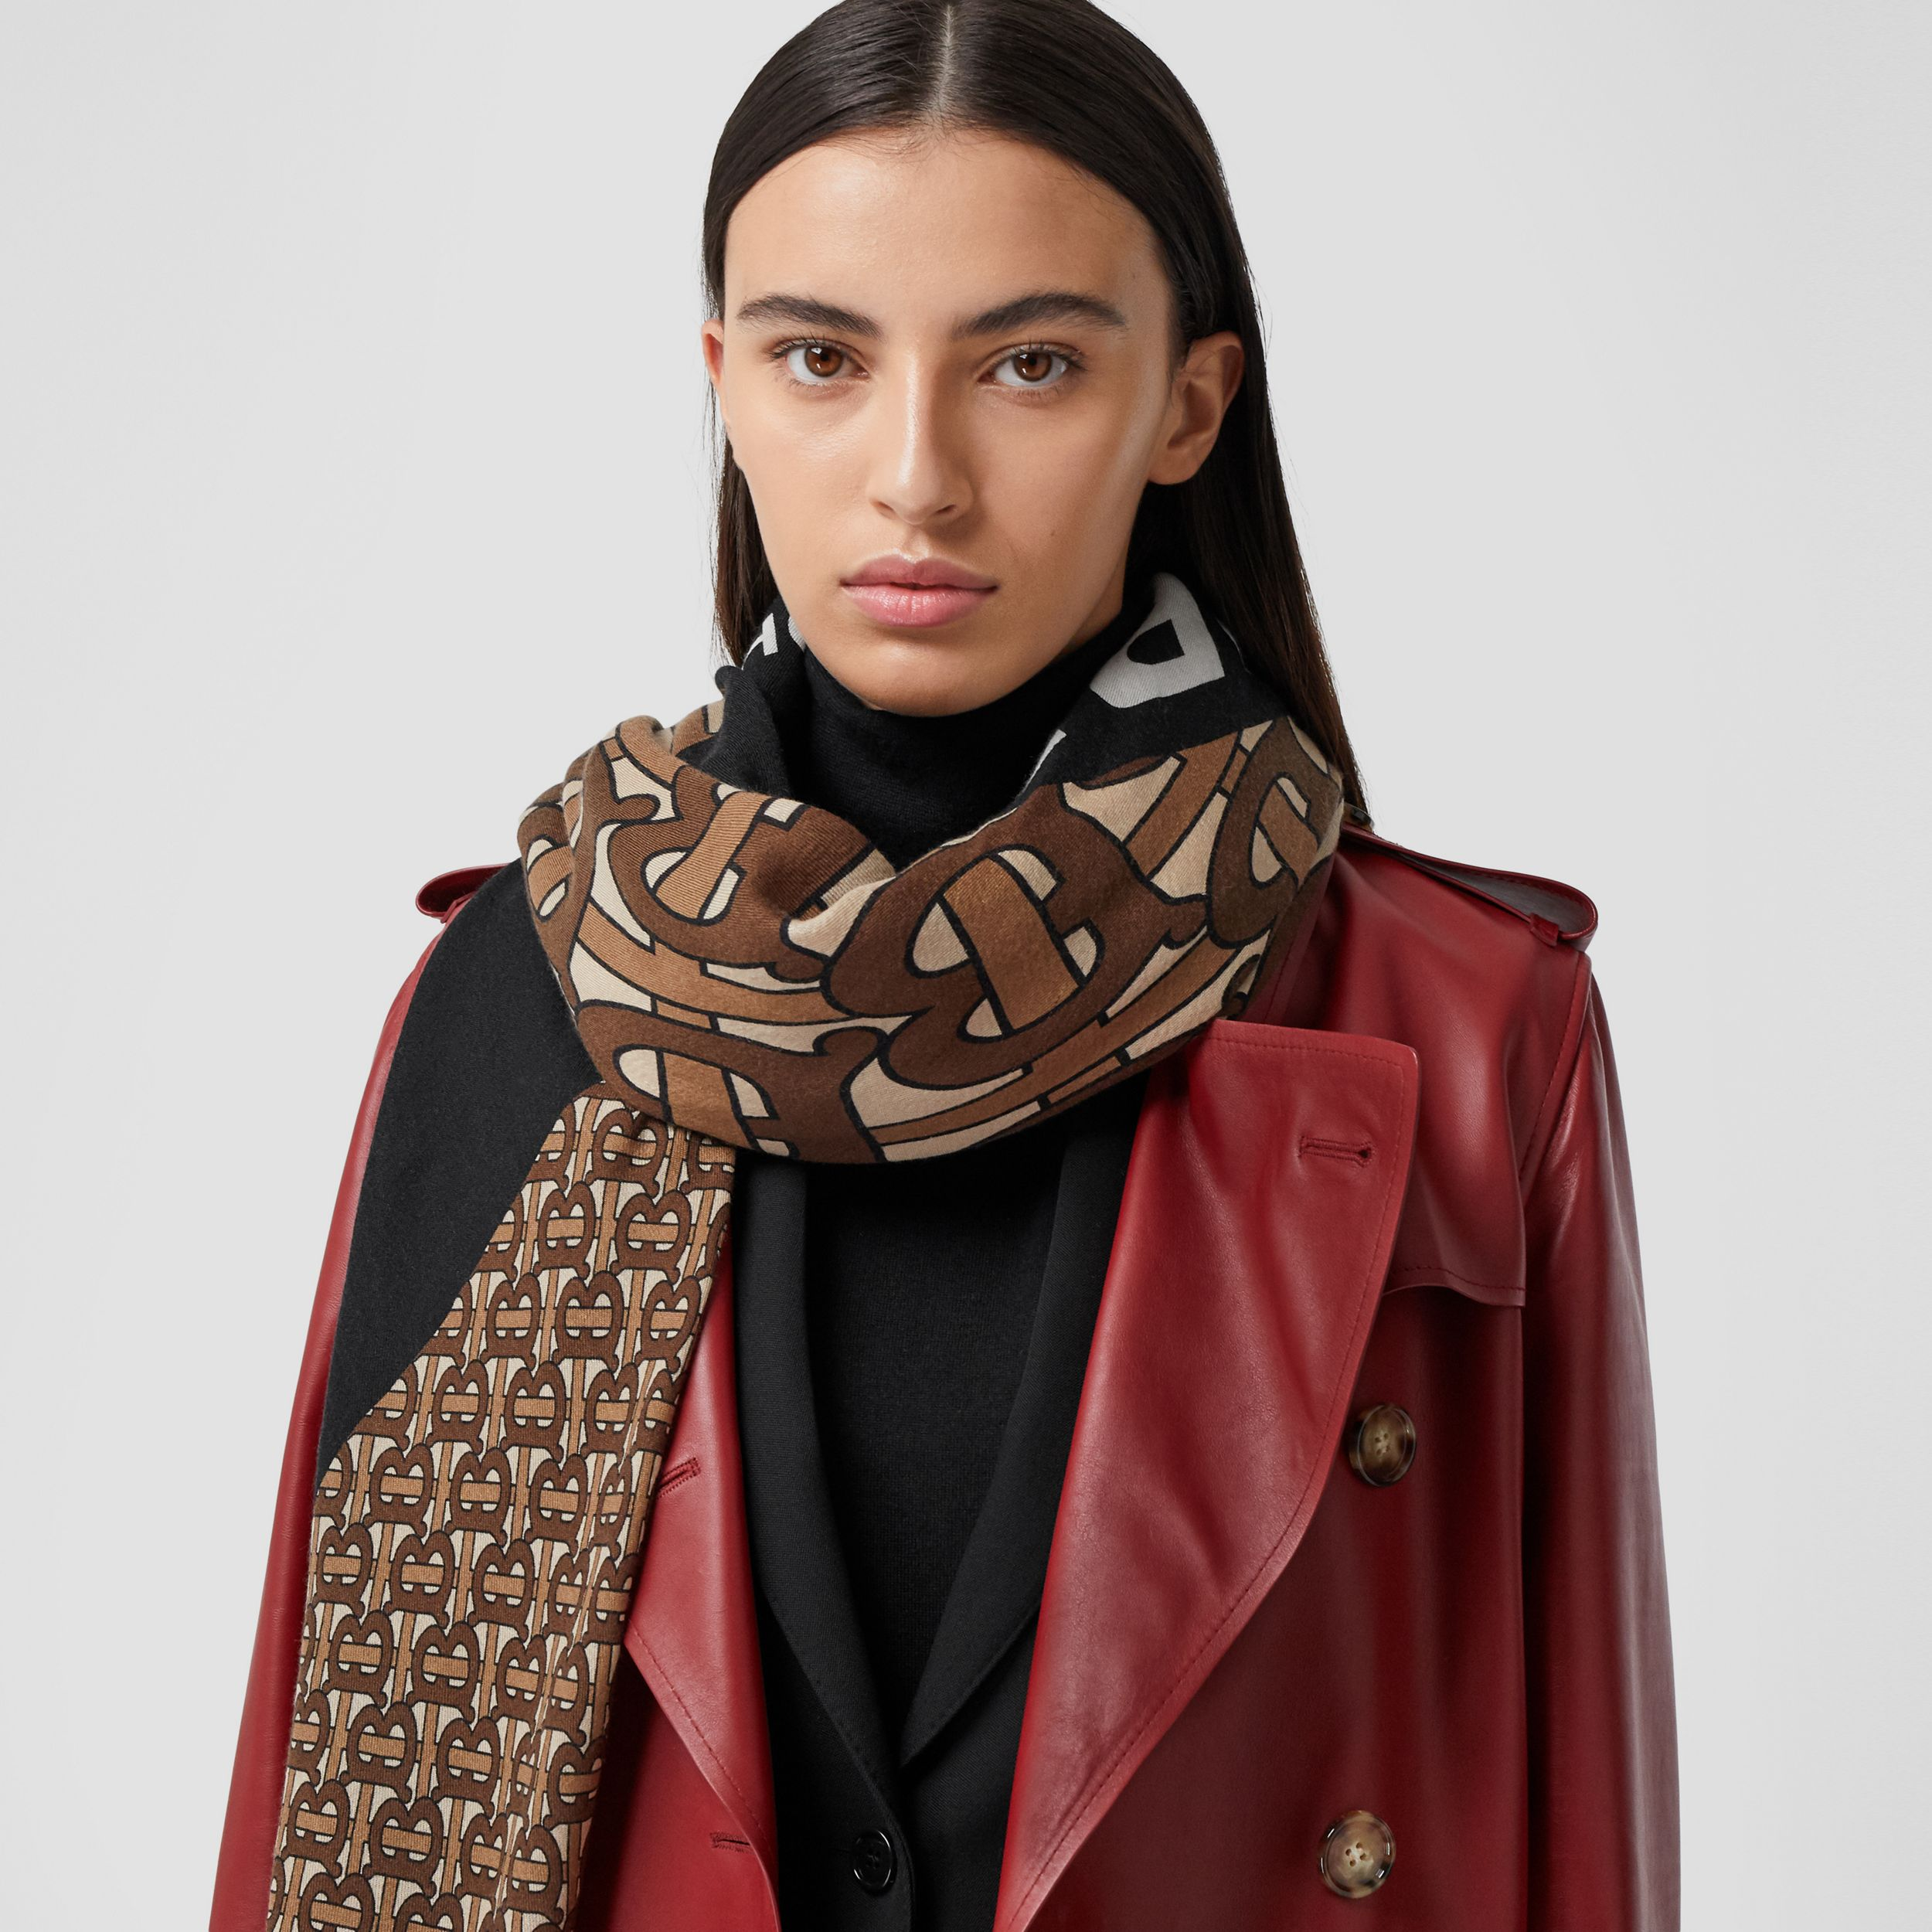 Monogram Print Cashmere Large Square Scarf in Bridle Brown | Burberry - 3